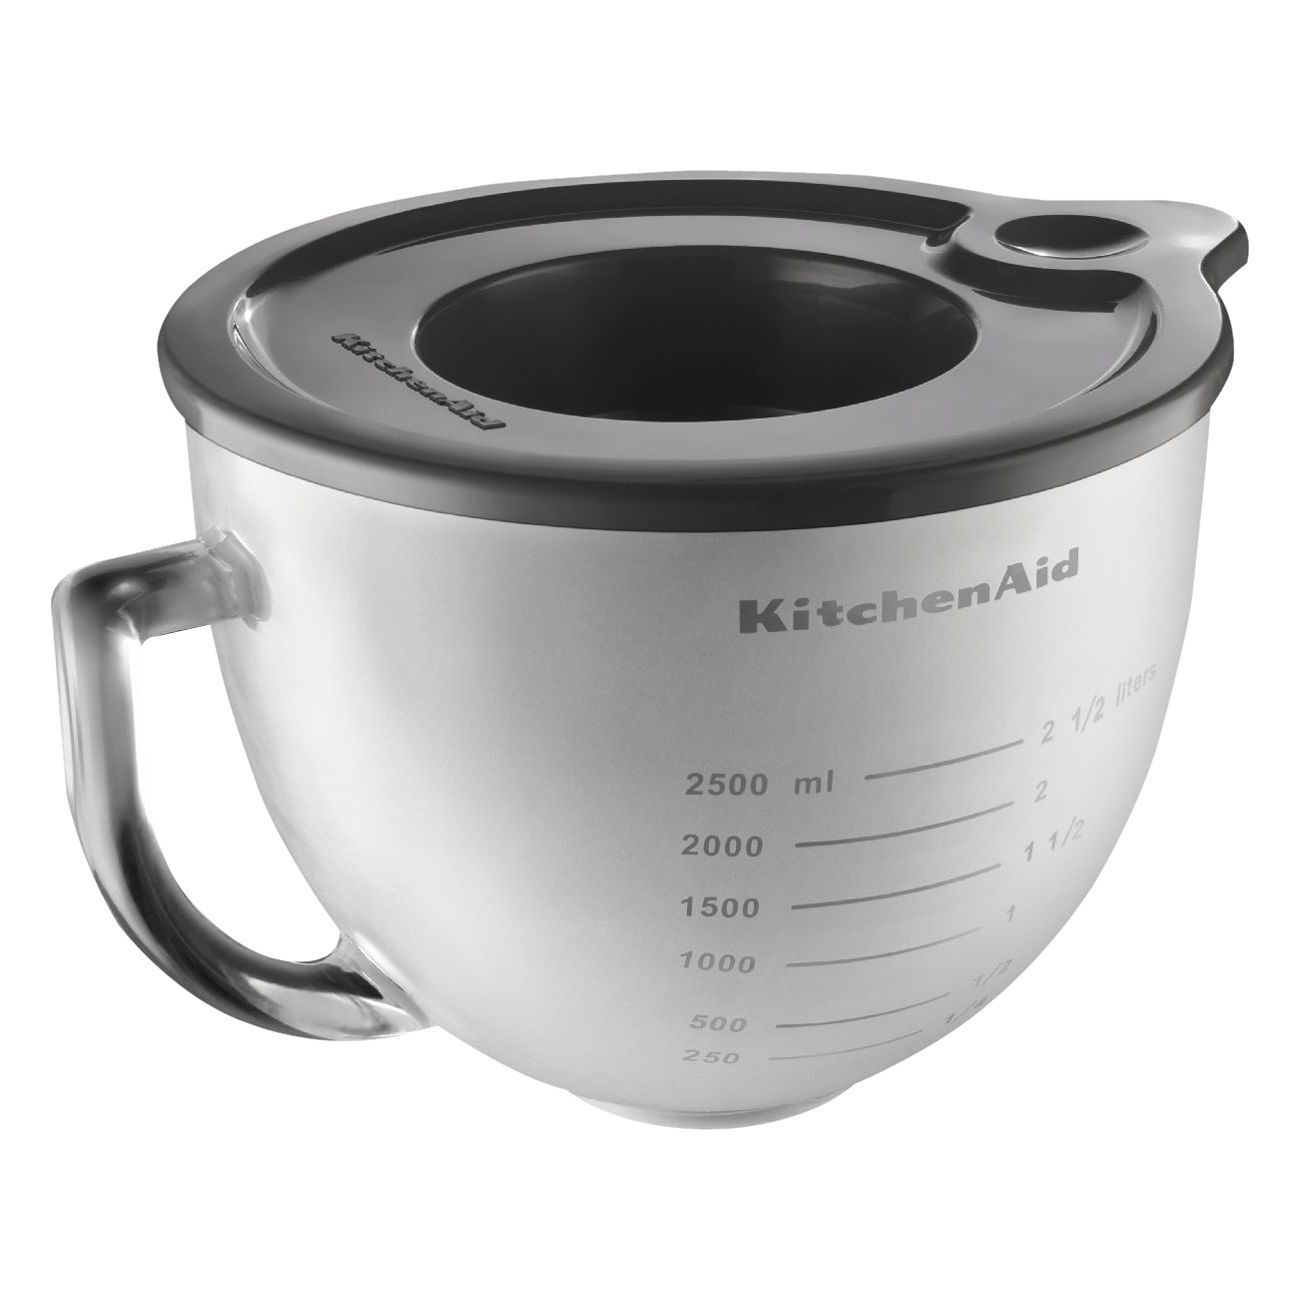 KitchenAid K5GBF 5 Quart Frosted Glass Bowl With Lid For Tilt Head Stand  Mixer, Clear